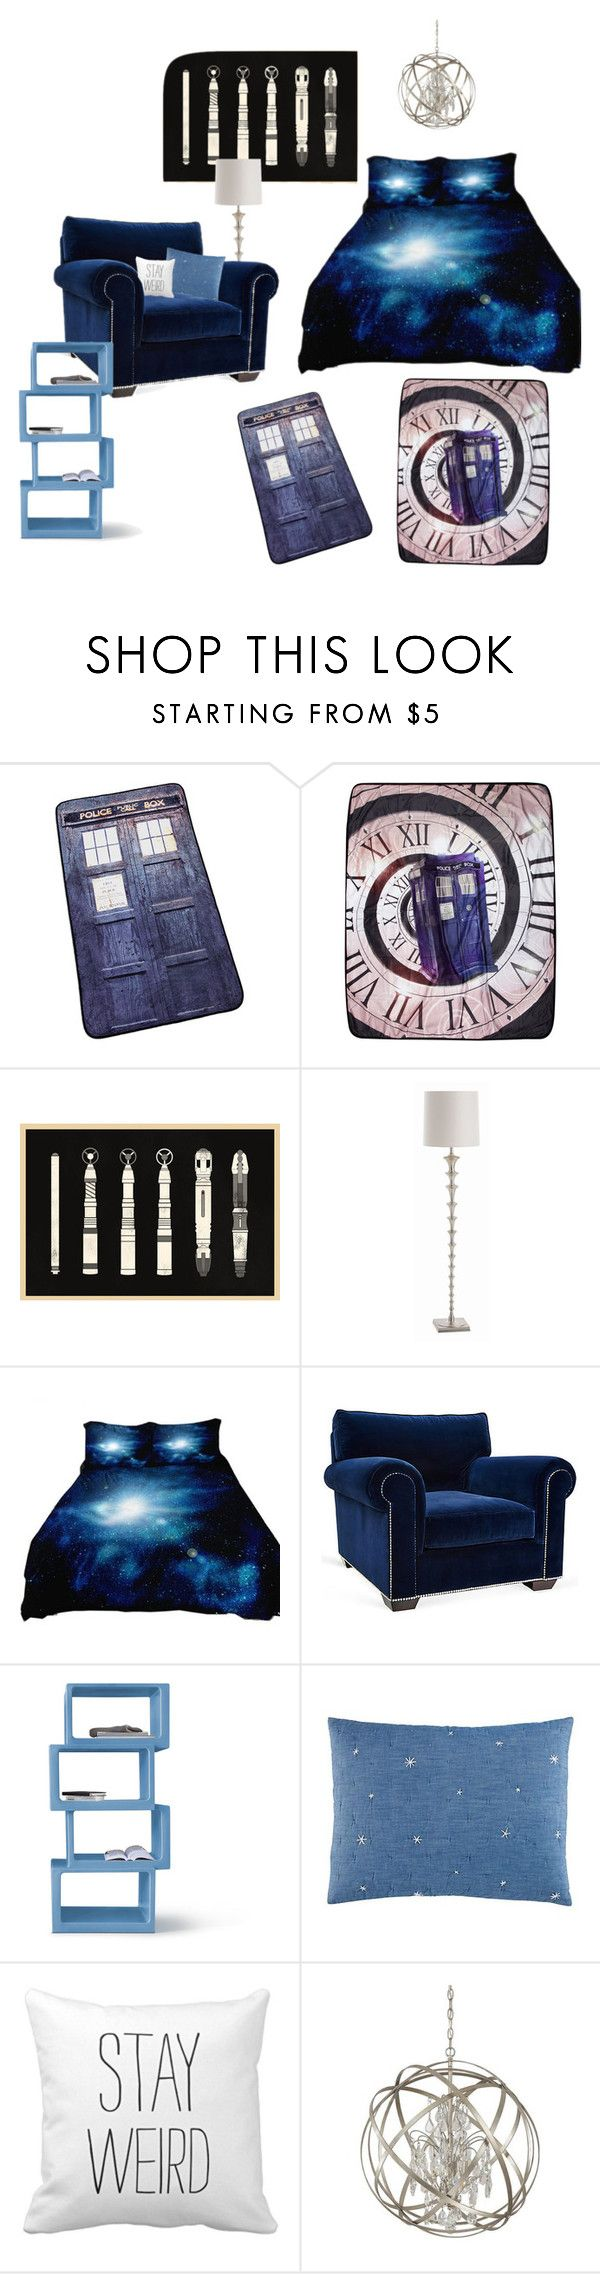 """""""doctor who bedroom"""" by iuzzini on Polyvore featuring interior, interiors, interior design, home, home decor, interior decorating, Arteriors, Barclay Butera, Twentyfirst and Humör"""